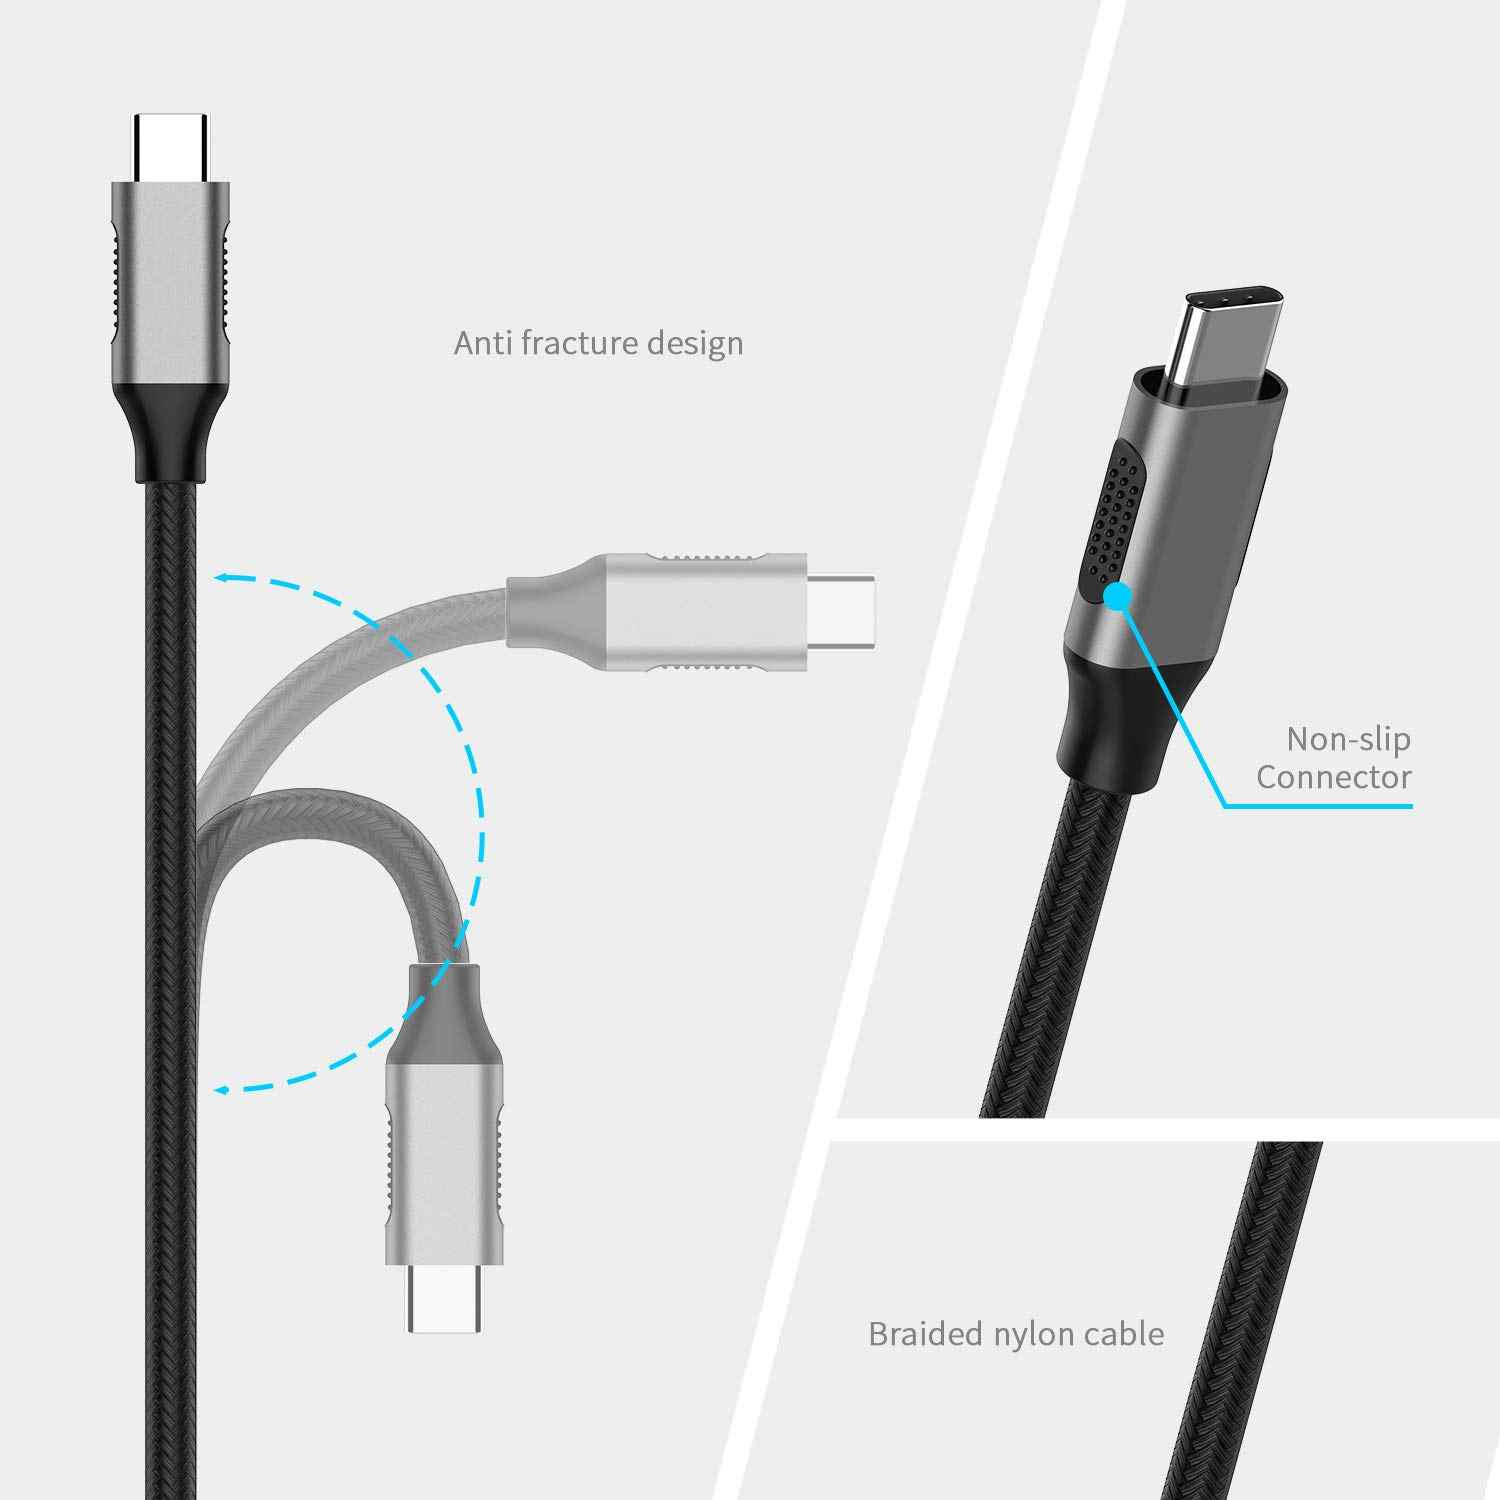 Usb C a Vga, di Tipo C a Vga Cavo Del Convertitore per Macbook Pro, 2018 2019 Ipad/Mac Air, Superficie Libro 2/Go, Chromebook 13/15